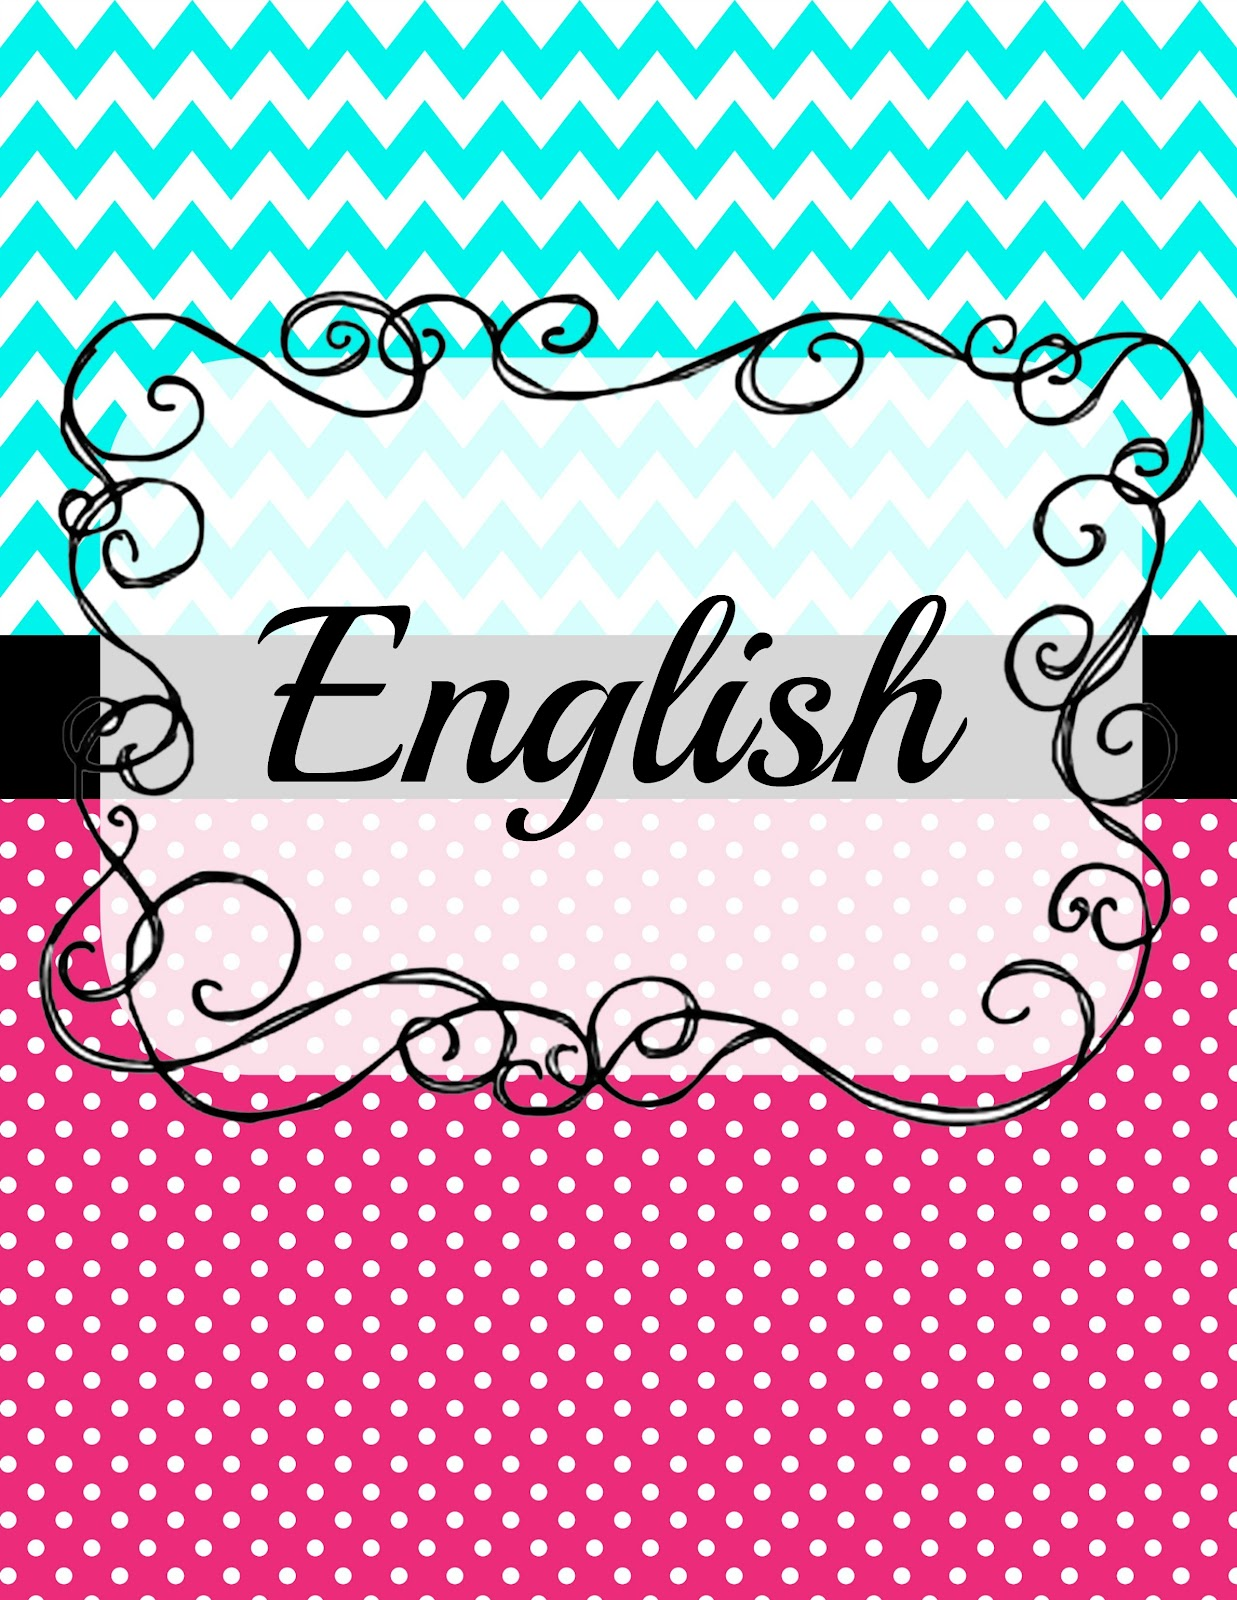 Book Cover Ideas For English ~ Pristine english binder cover kitty baby love